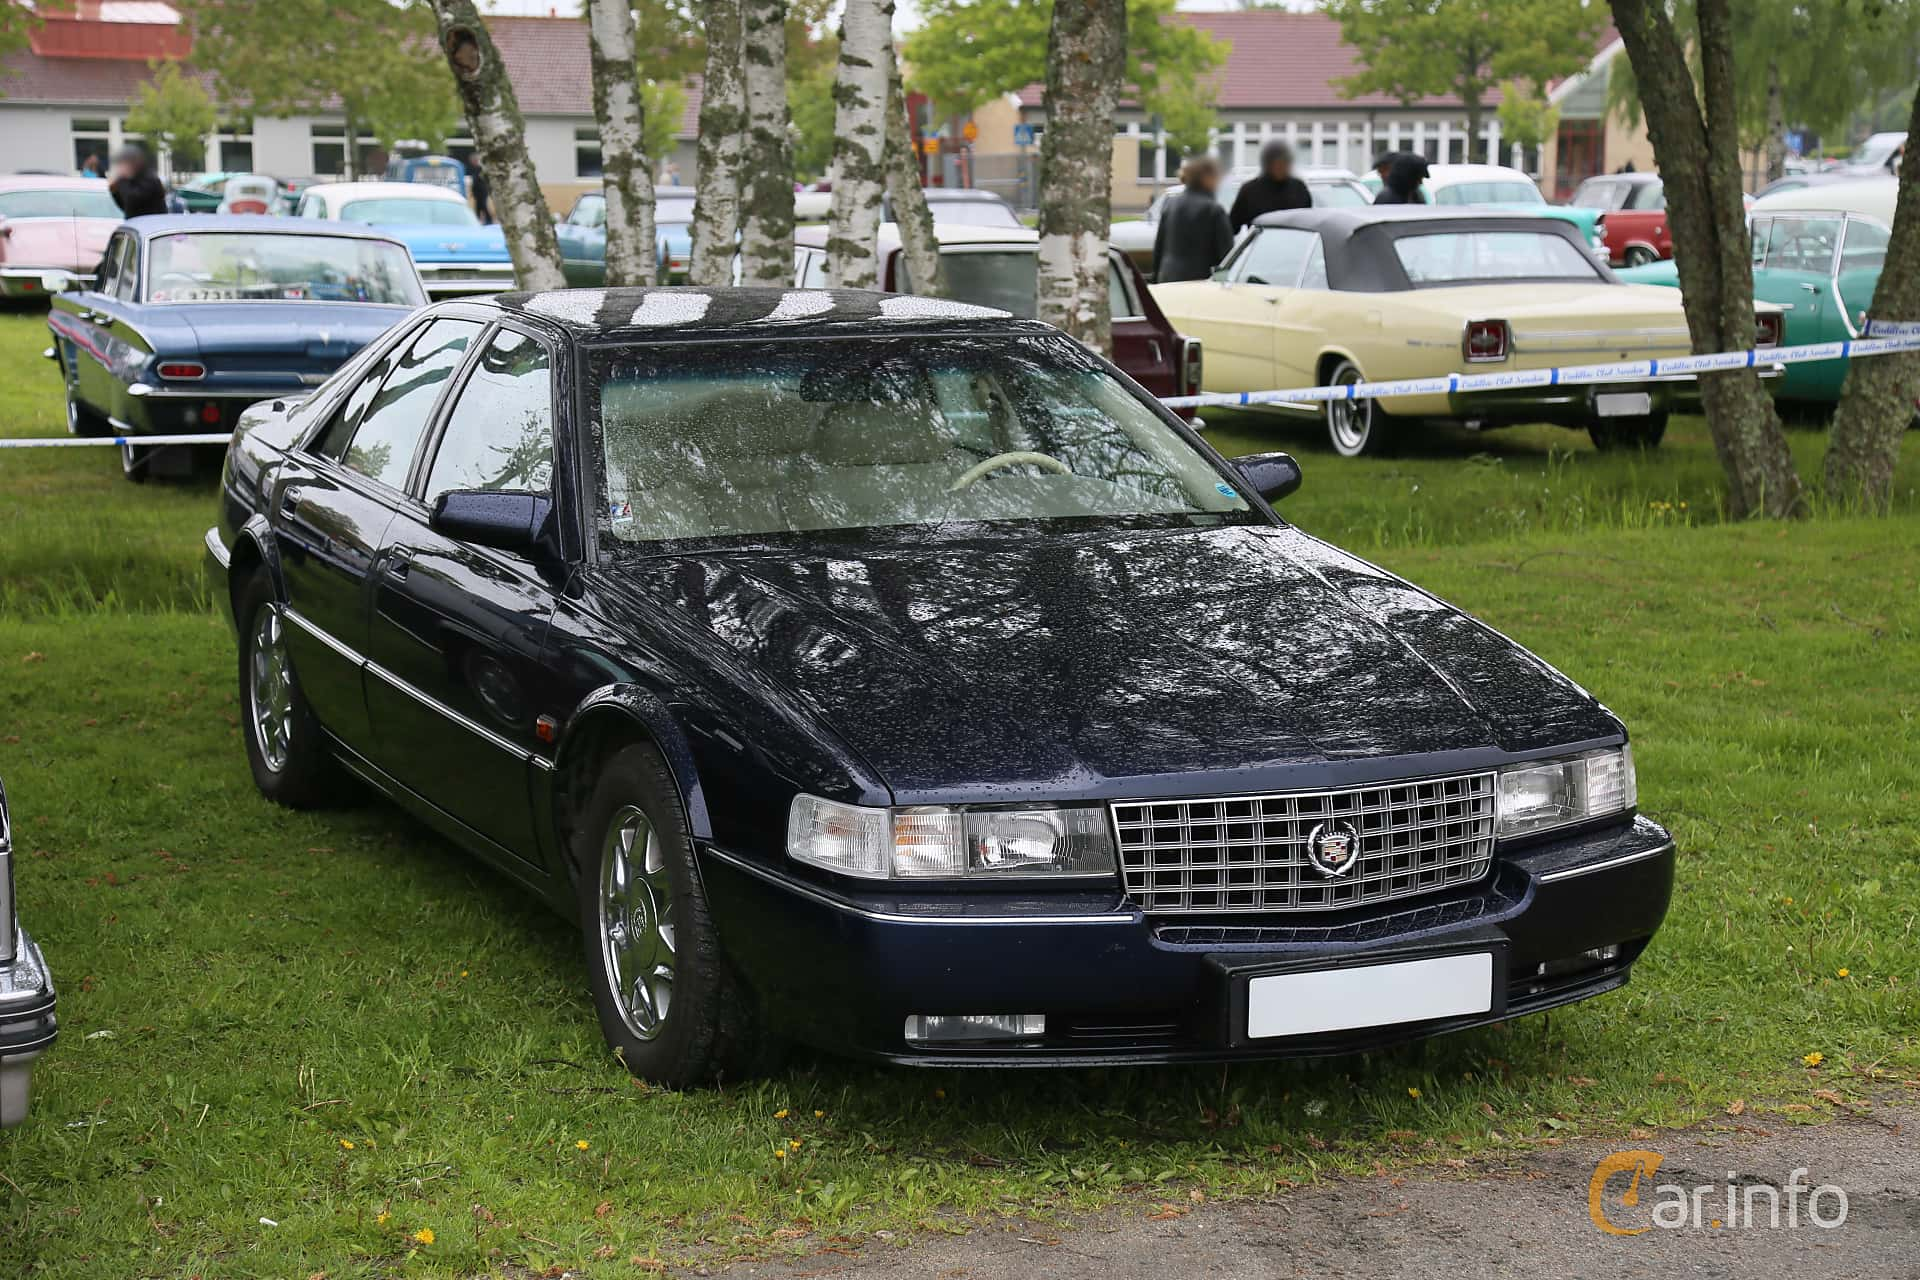 user images of cadillac seville 4th generation cadillac seville 4th generation